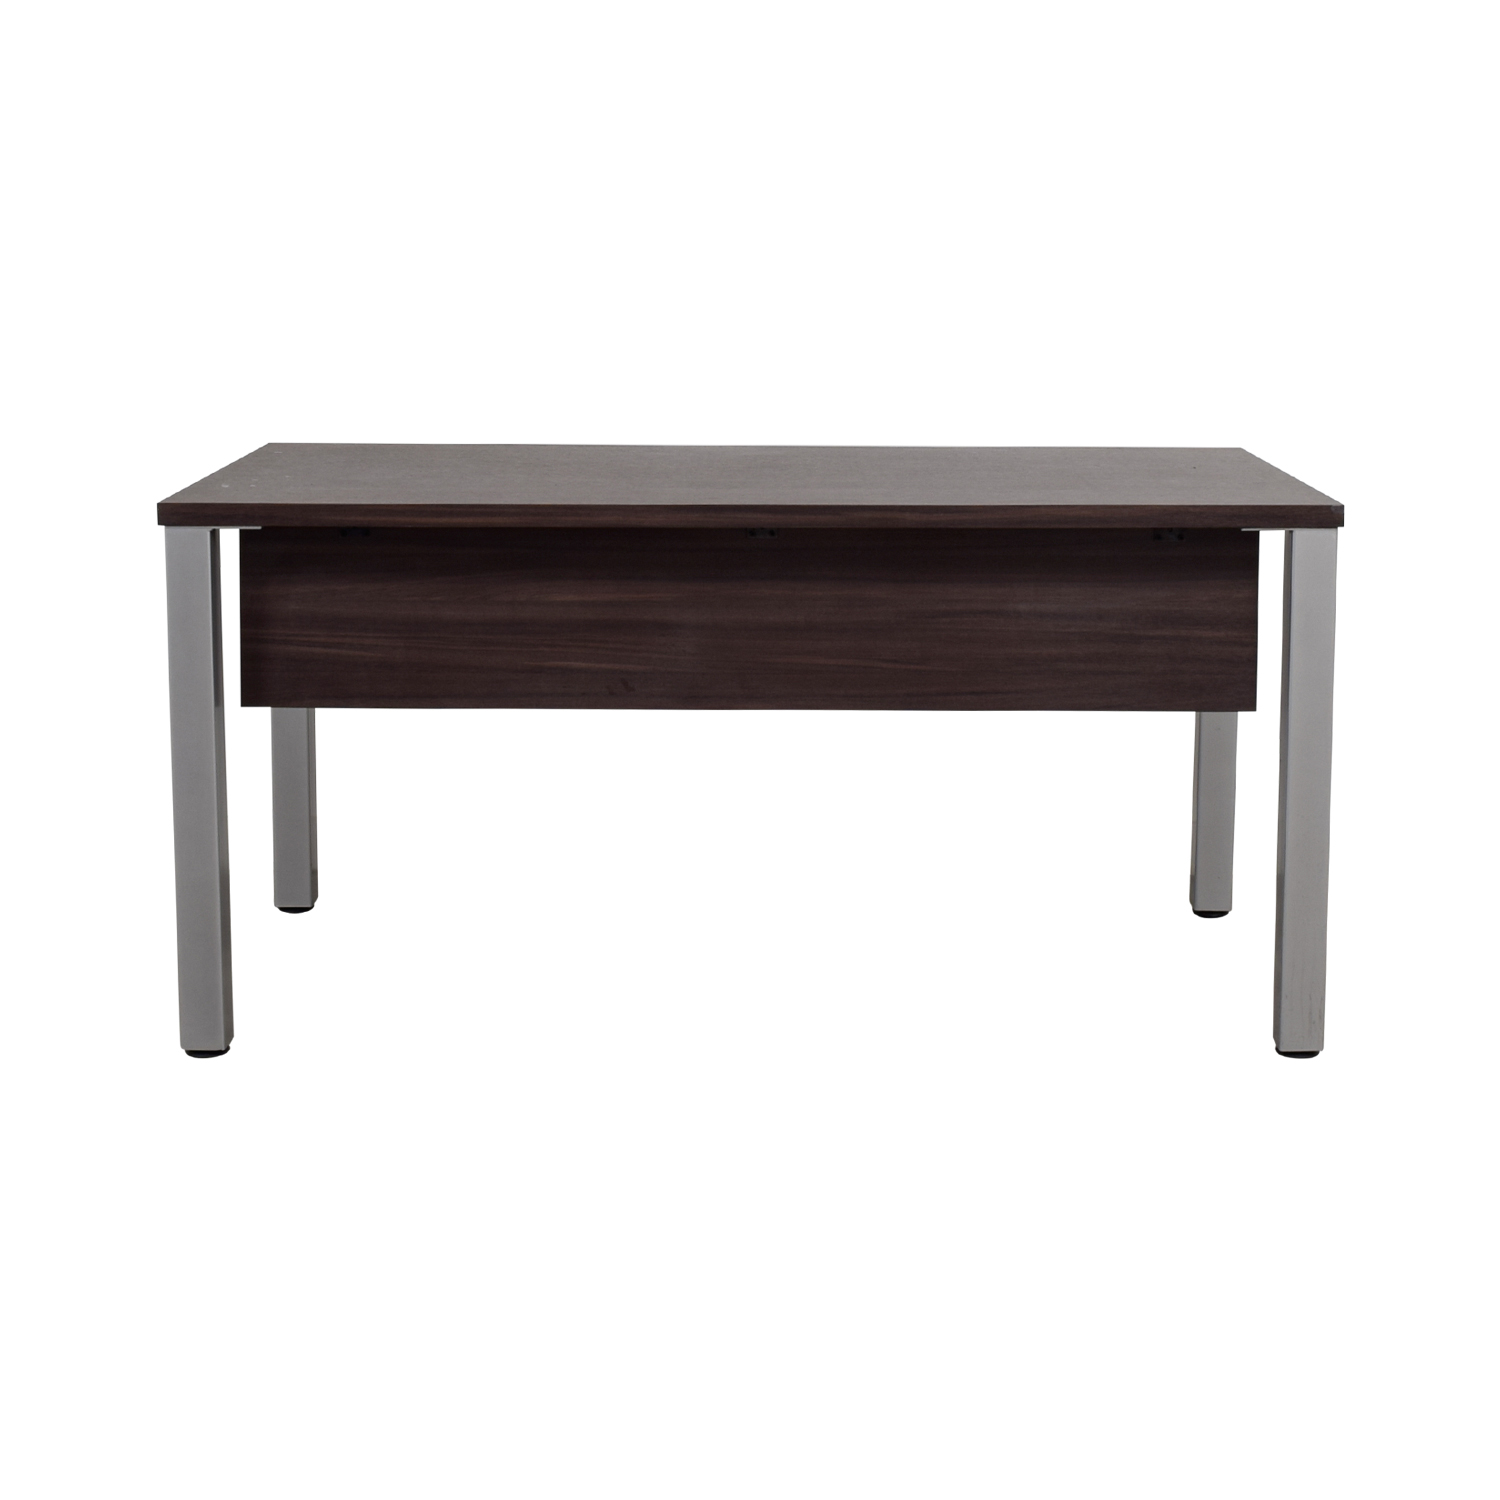 Wood and Chrome Office Desk for sale